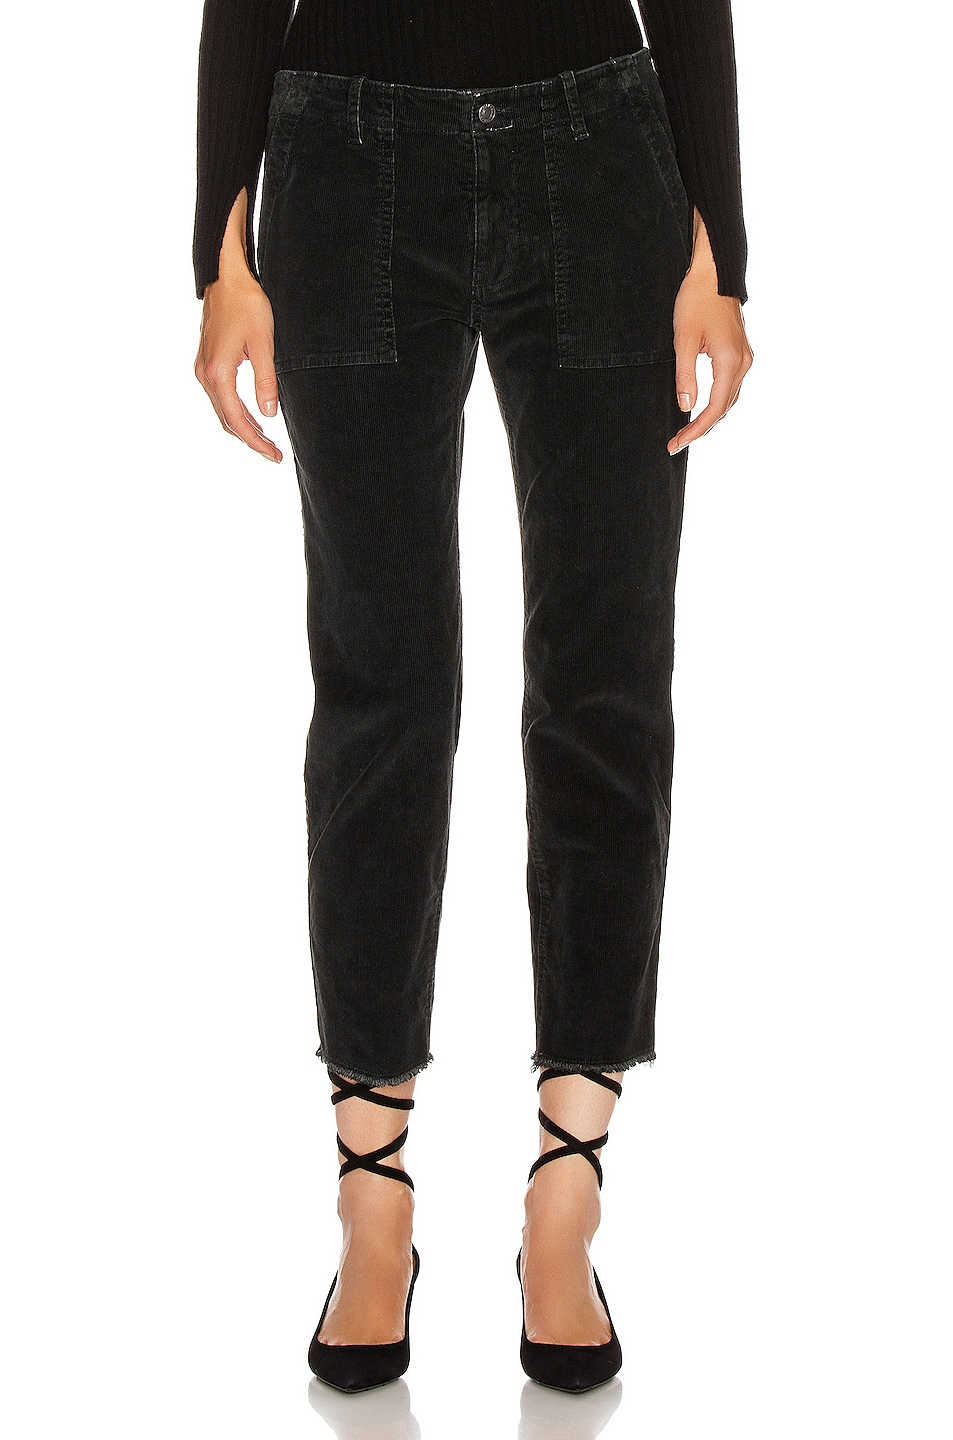 Image 1 of NILI LOTAN Jenna Pant with Tape in Jet Black, Black & Gold